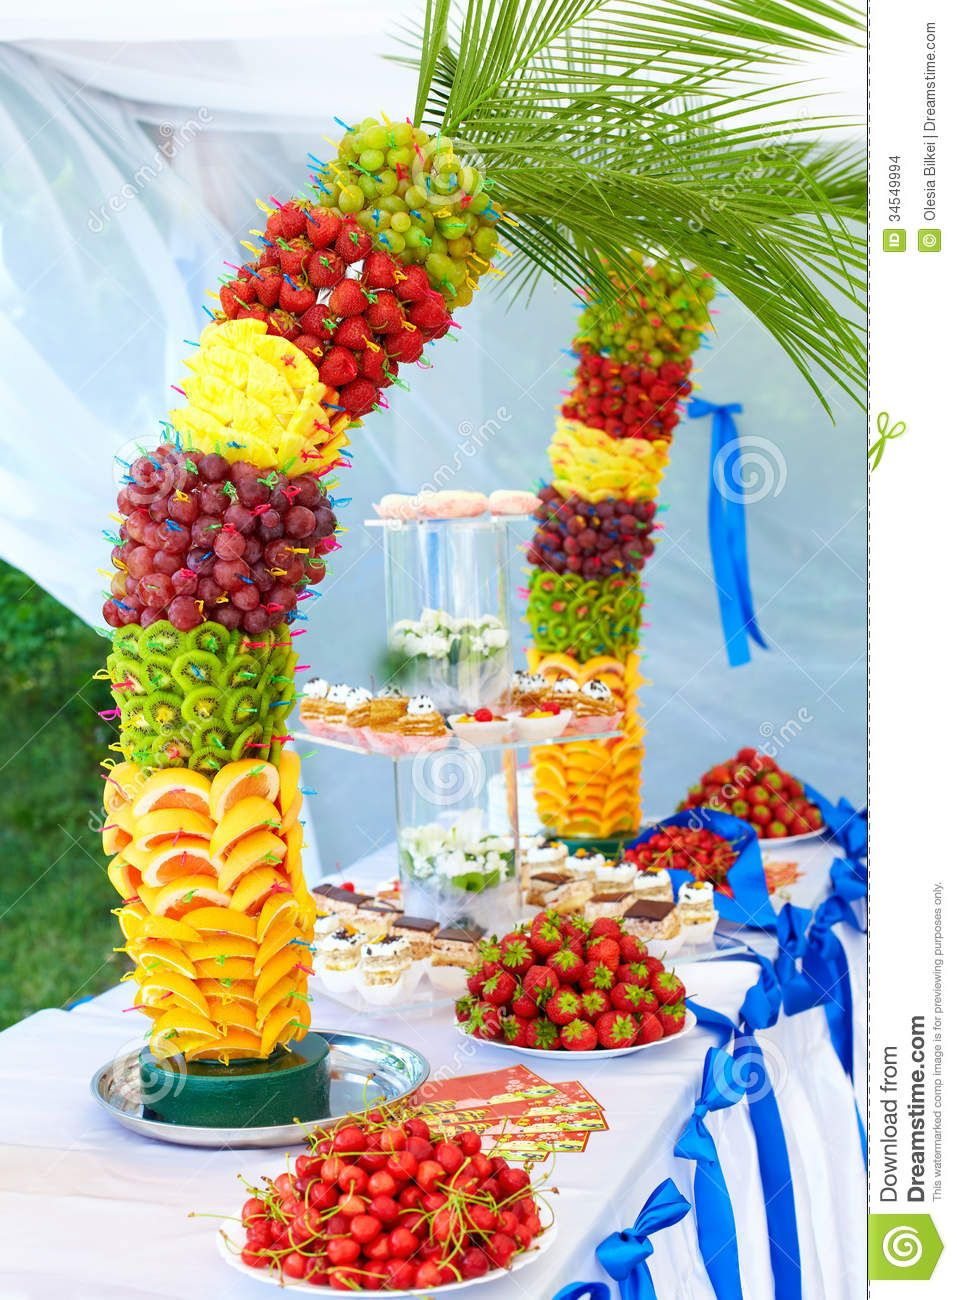 Fruit party decoration ideas essen pinterest fruit for Decoration fruit